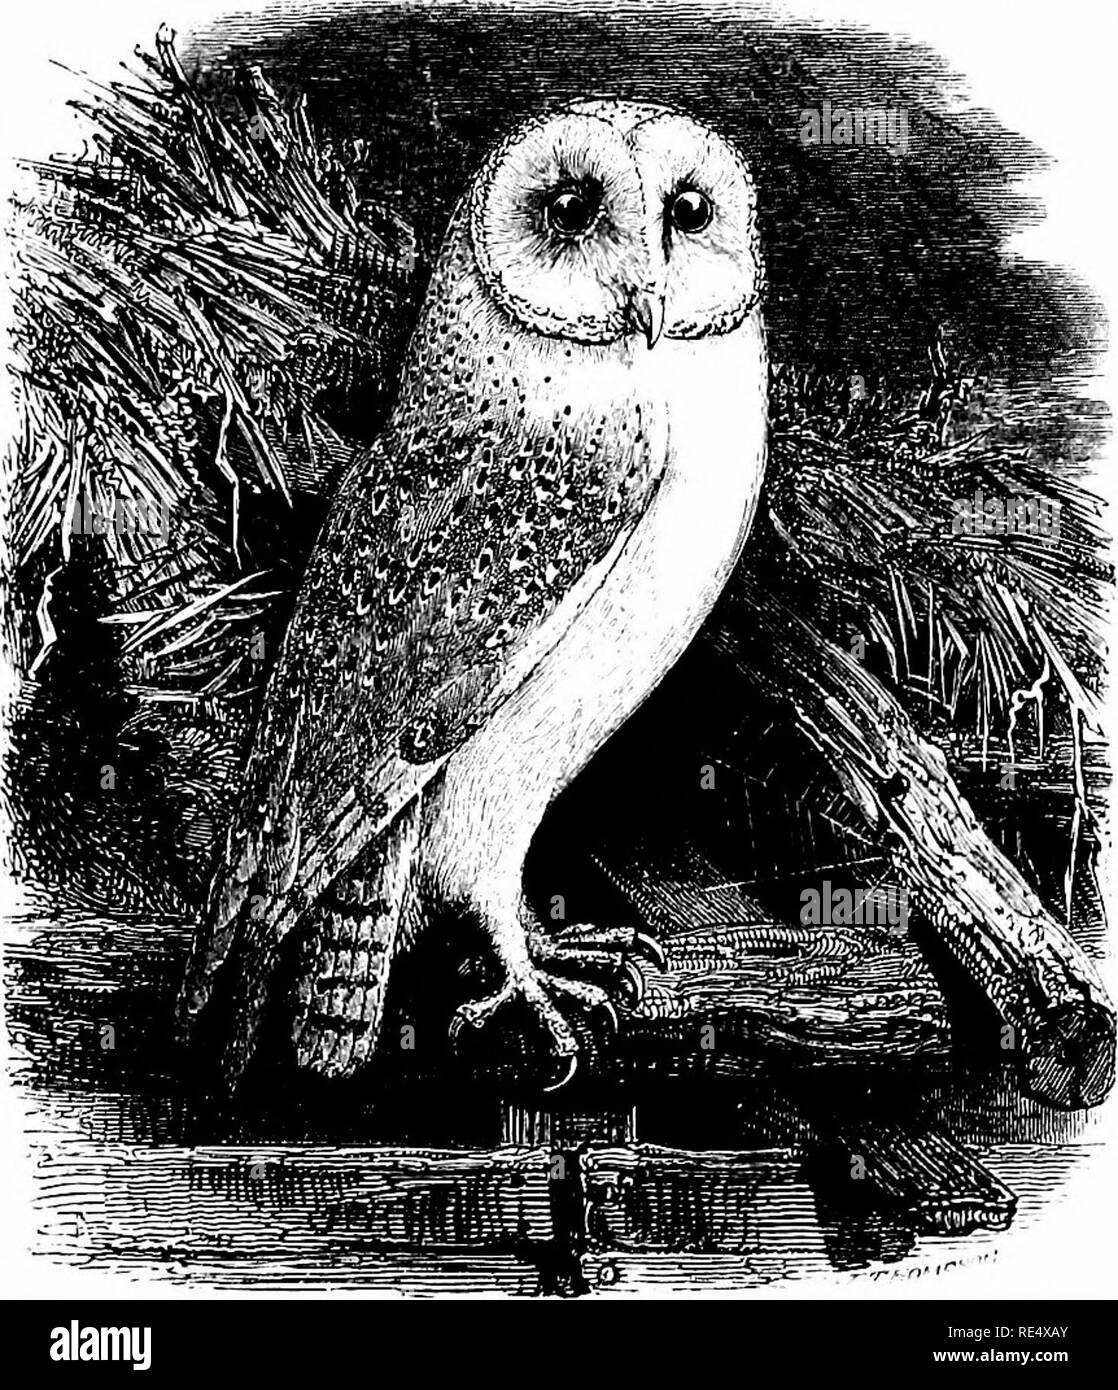 . An illustrated manual of British birds. Birds. STRIGID^. 291. THE BARN-OWL. Strix flXmmea, Linnaeus. This species, also known as the White, Screech- or Church-OwI, is generally distributed throughout England, Wales and Ireland ; it might even be common, but for the persecution it suffers from game- keepers, ignorant farmers, and dealers in plumes for ladies' hats, fire- screens &c. In Scotland it is not often found above the Lowlands, though it breeds in small numbers as far as Caithness and the Inner Hebrides, including Skye; in the Orkneys and Shetlands it is almost—if not quite—unknow - Stock Image